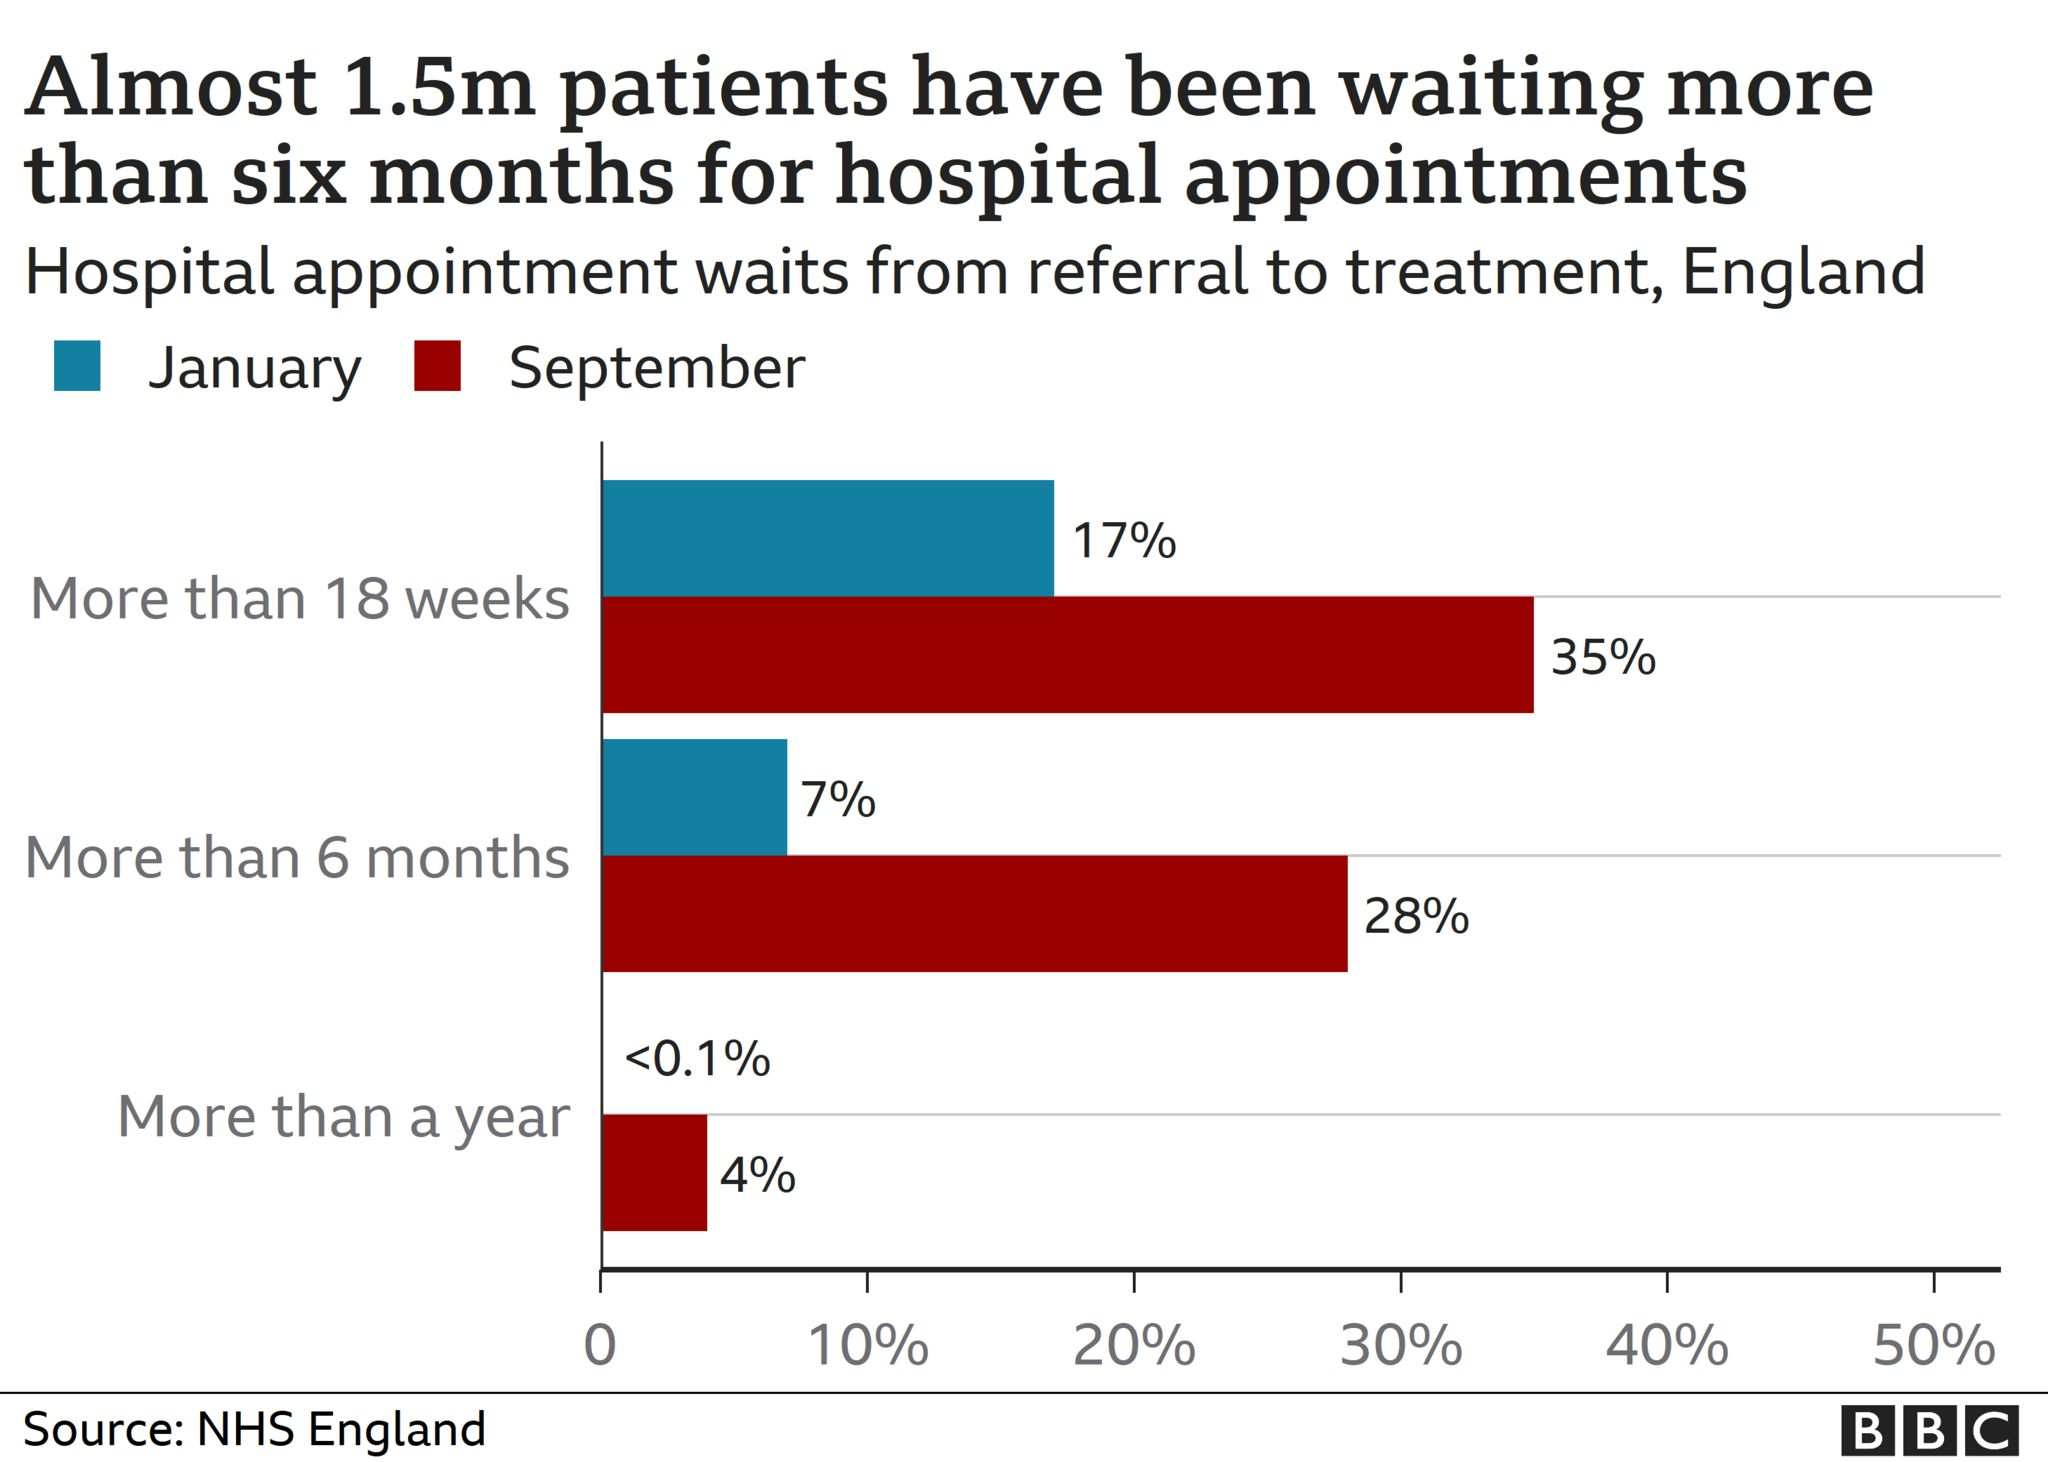 Chart showing hospital appointment growth